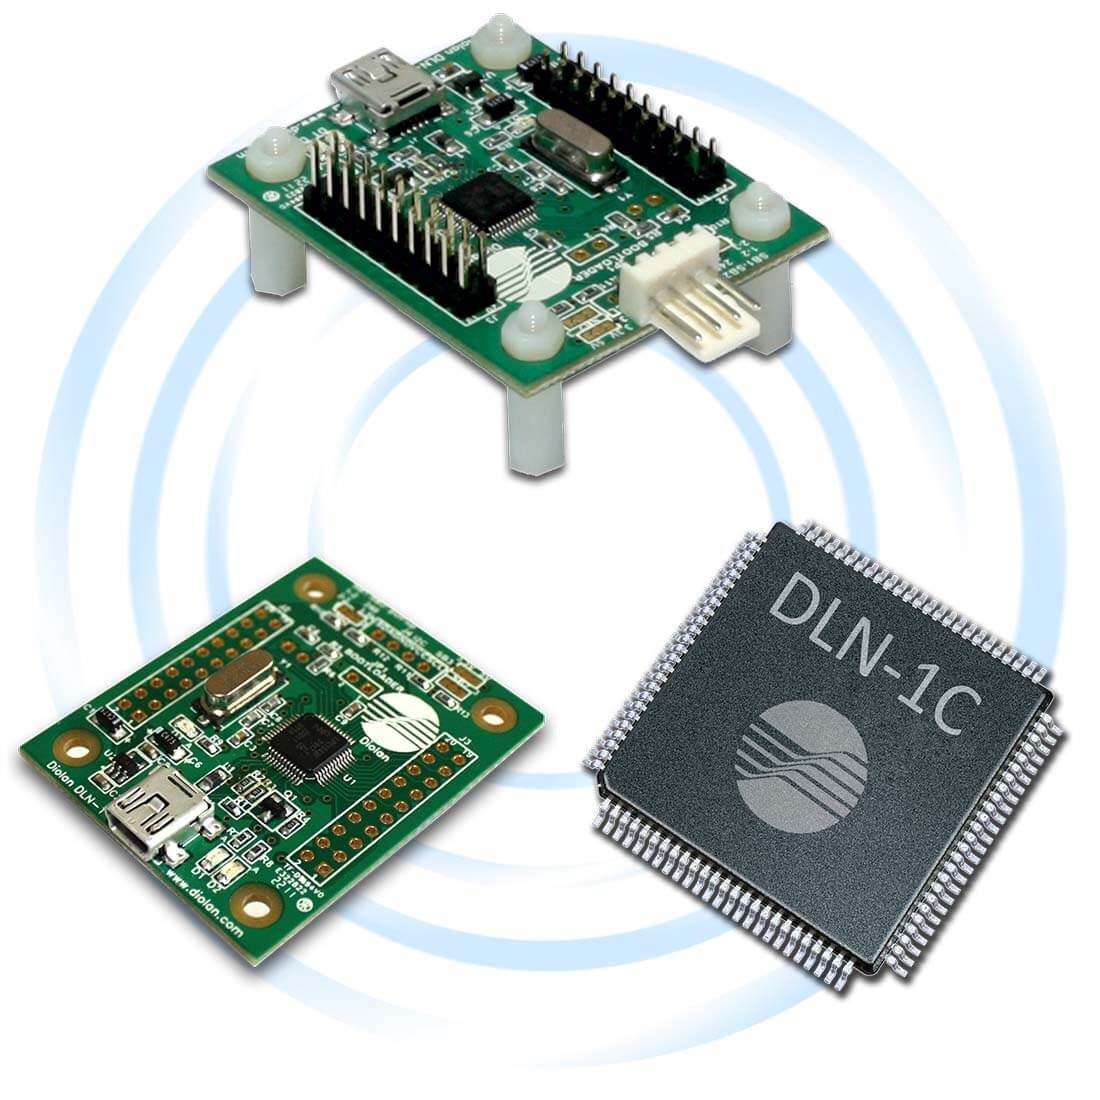 DLN-1 PC-I2C/SPI/GPIO Interface Adapter (DLN Adapter Group)